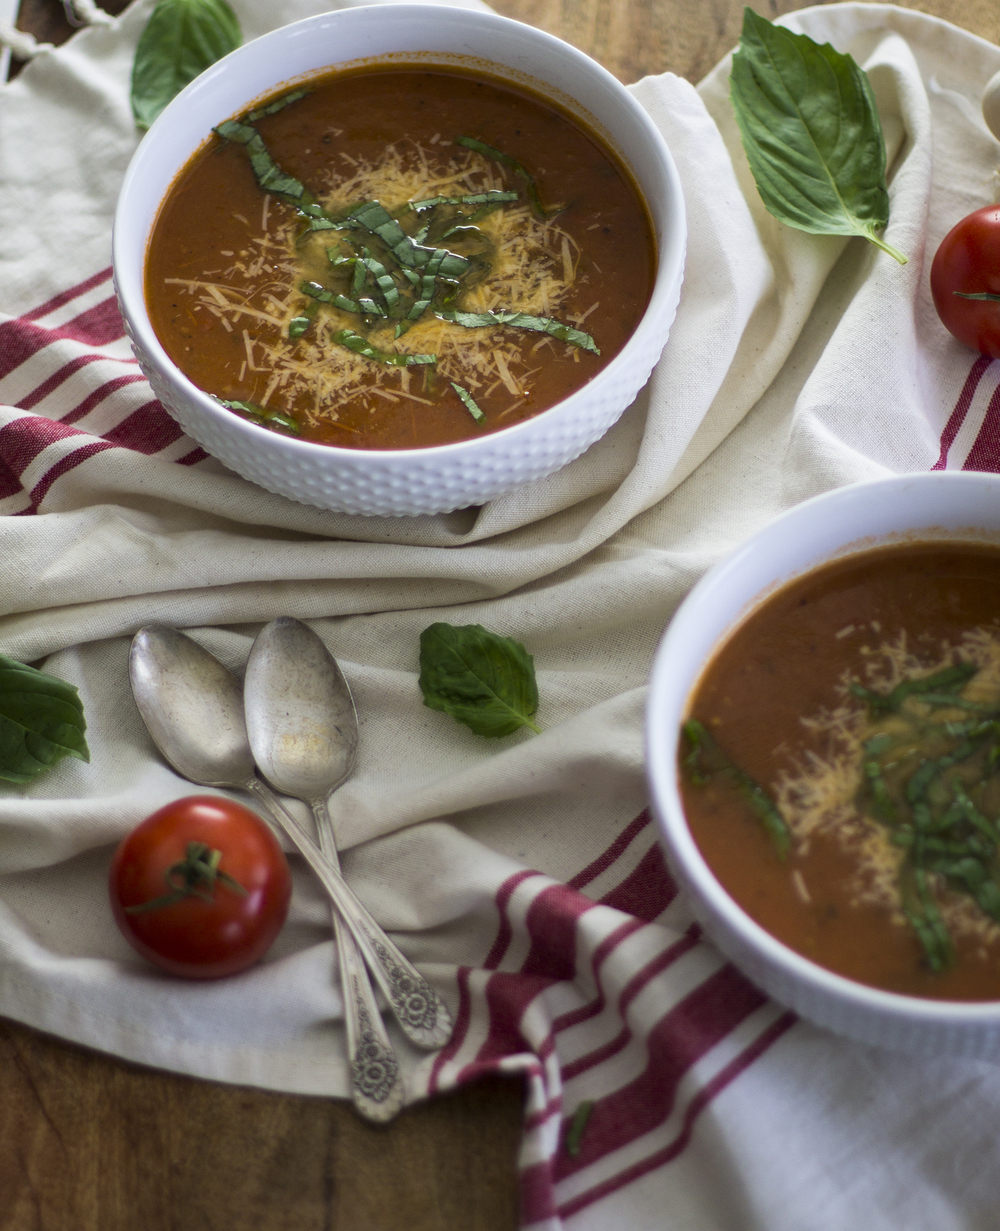 Spicy Roasted Tomato Basil Soup: My Diary of Us